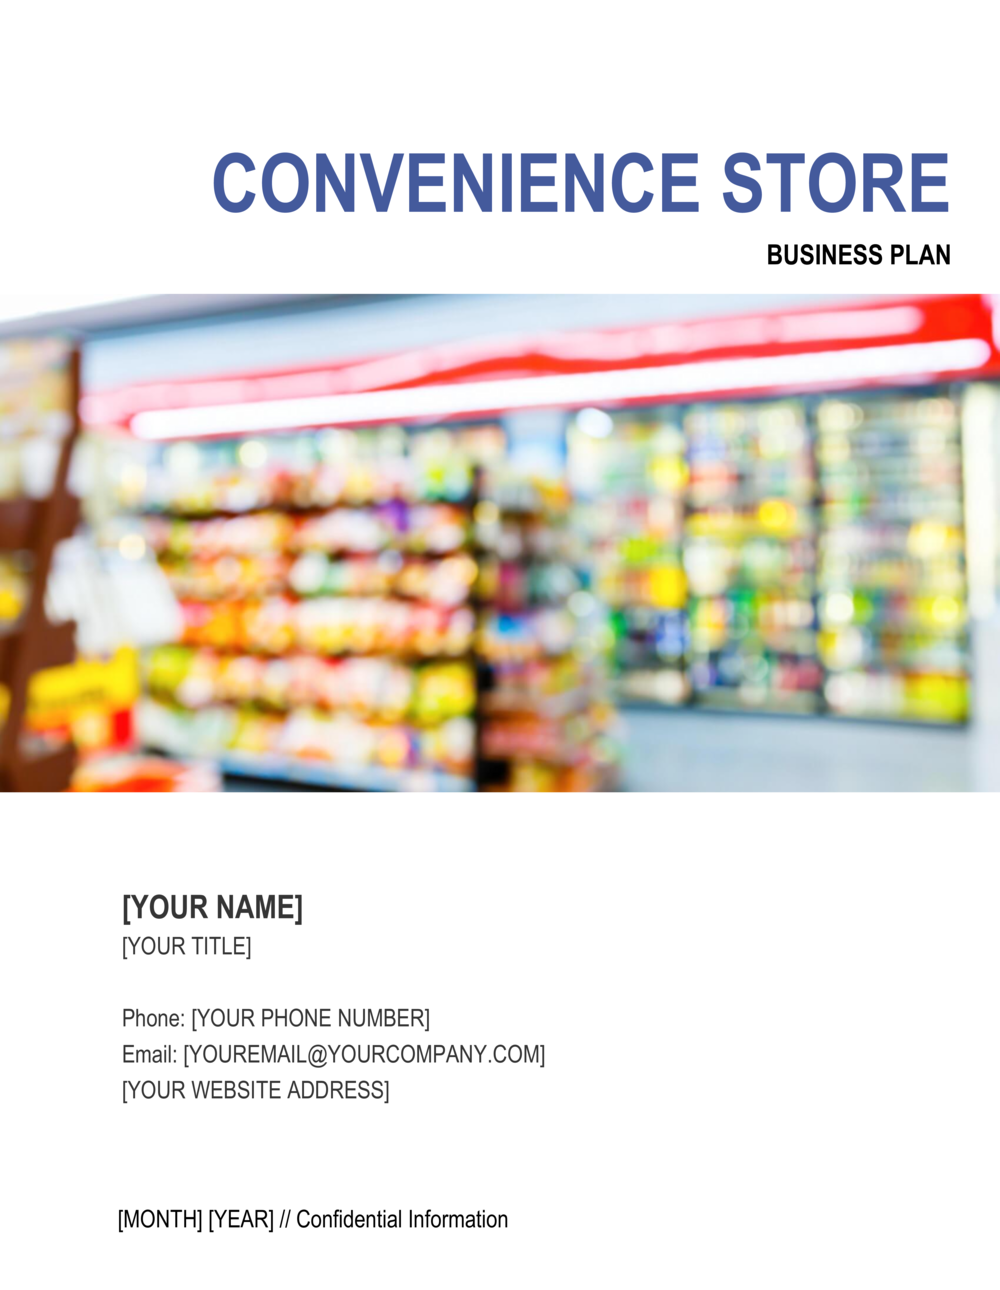 Business-in-a-Box's Convenience Store Business Plan Template